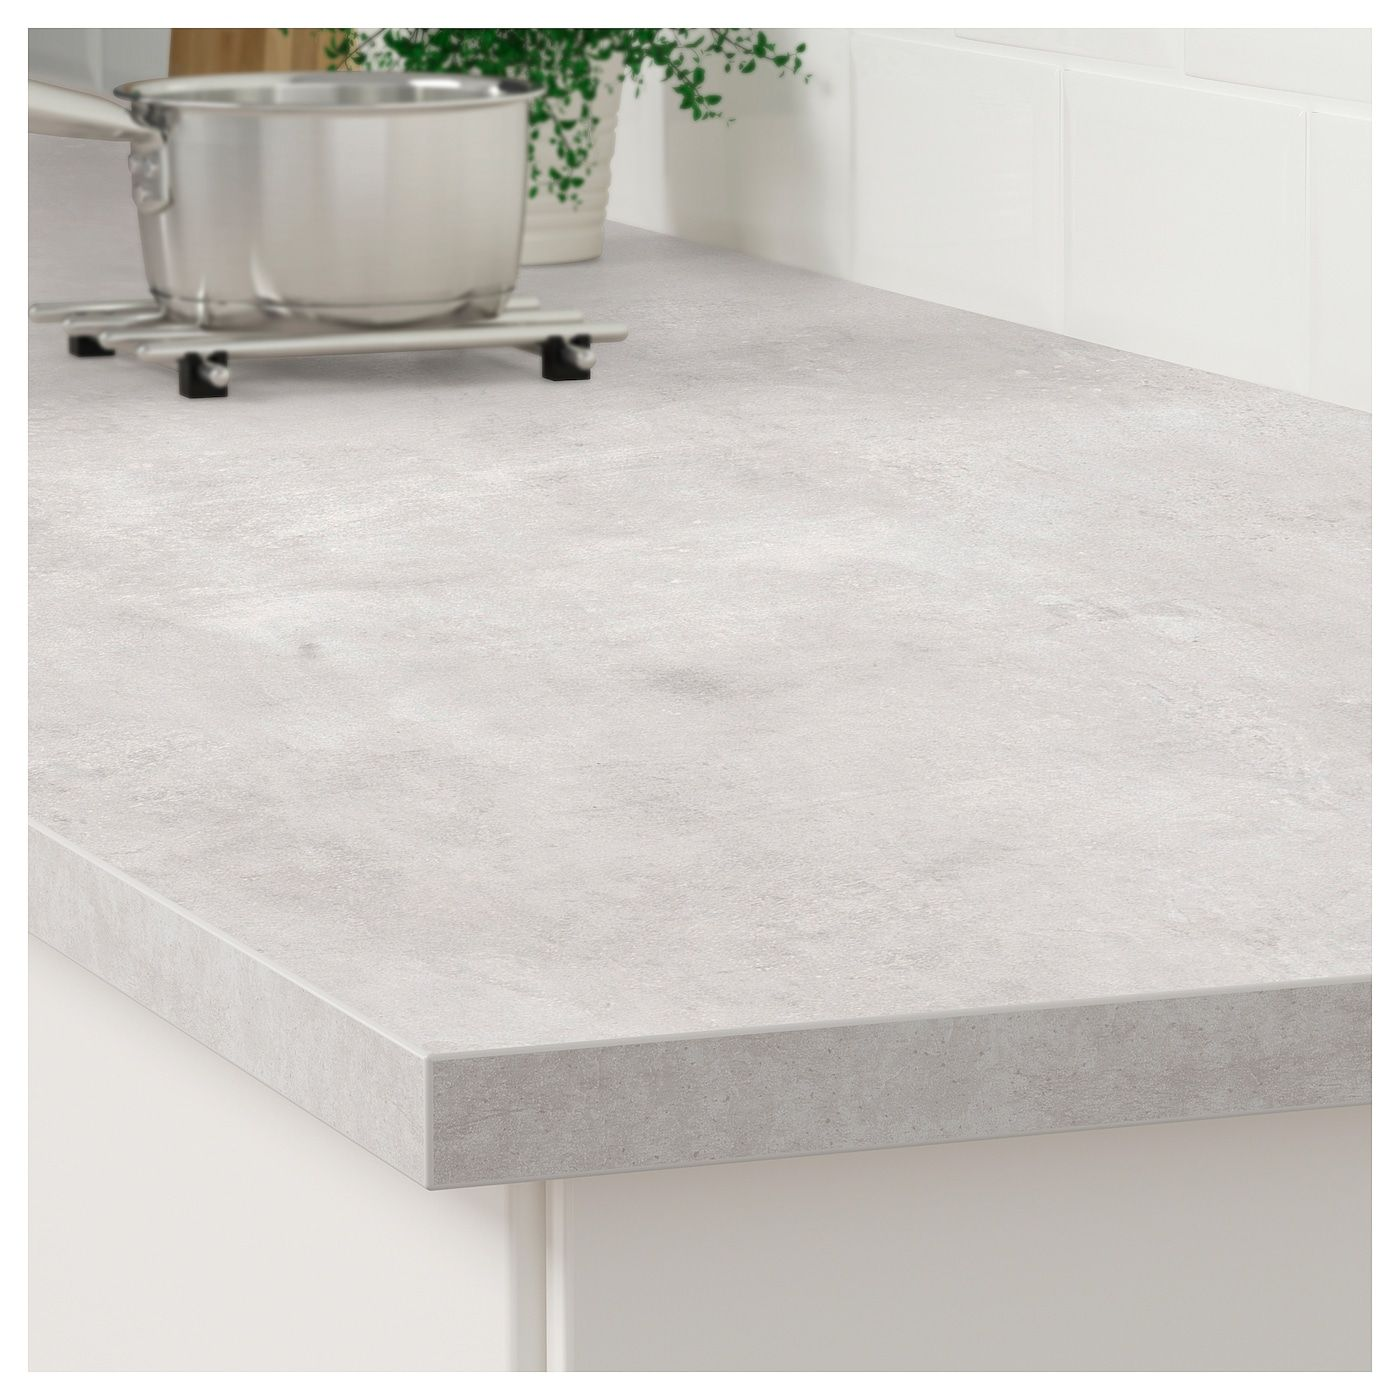 Countertop Ekbacken Light Gray Concrete Effect Laminate Mes Idees De Renos Comptoir Stratifie Comptoir Cuisine Et Plan De Travail Stratifie